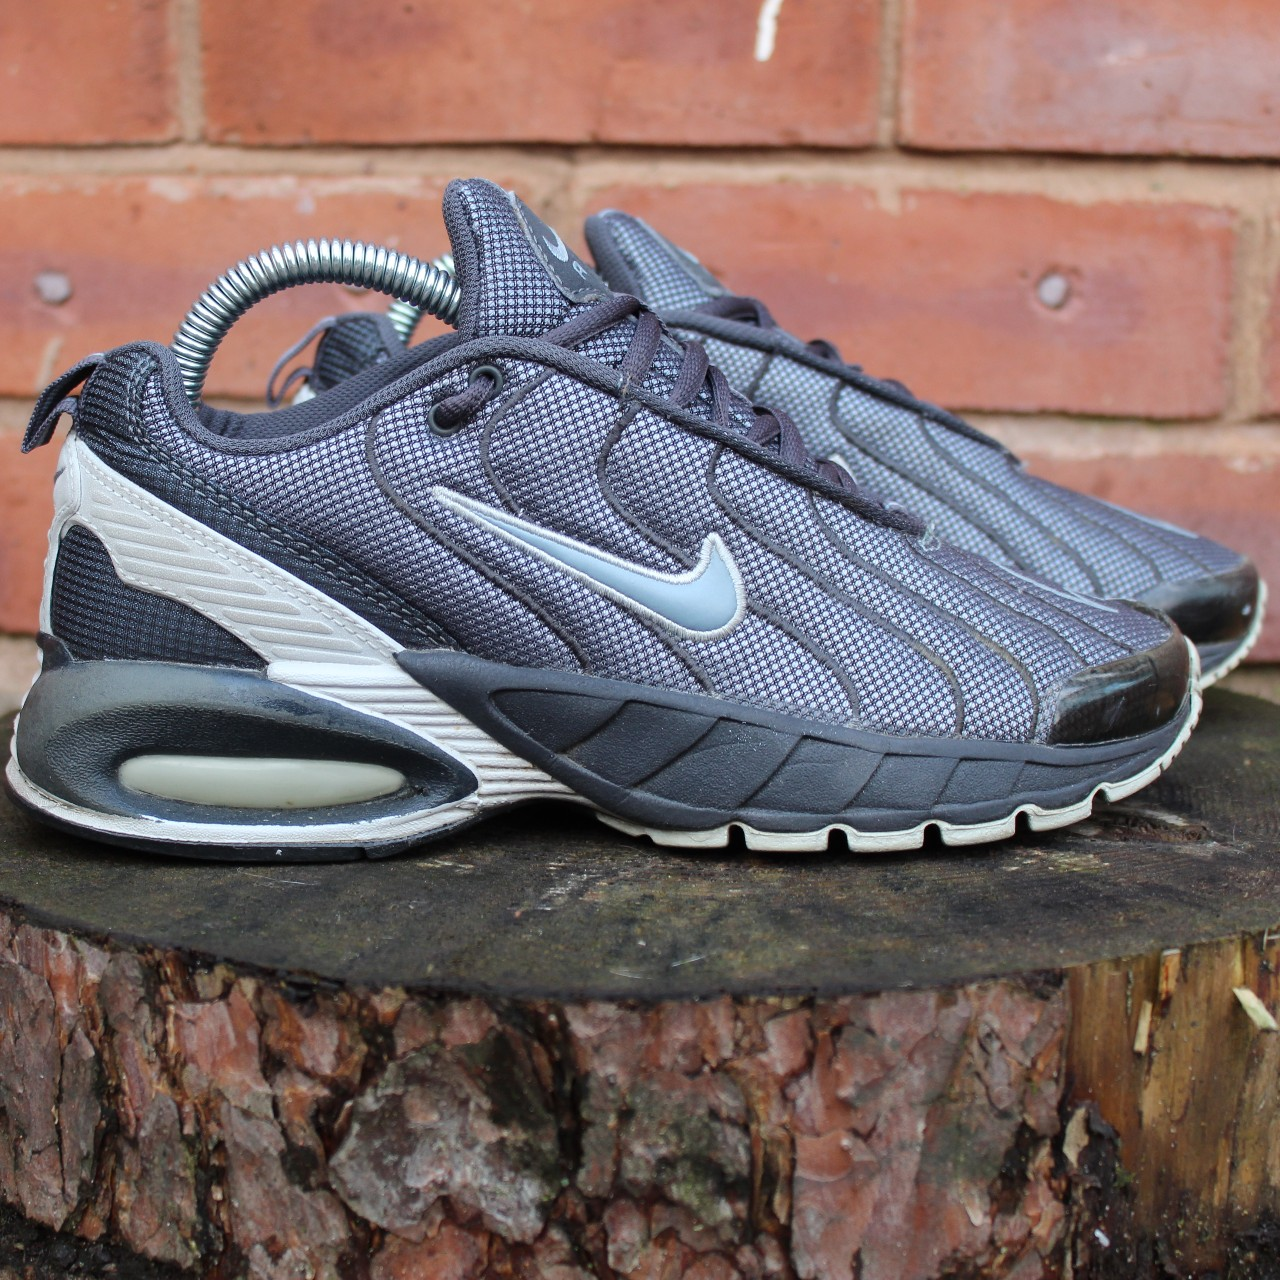 Nike Air Max Sanjaya Year: 2000 Excellent Depop